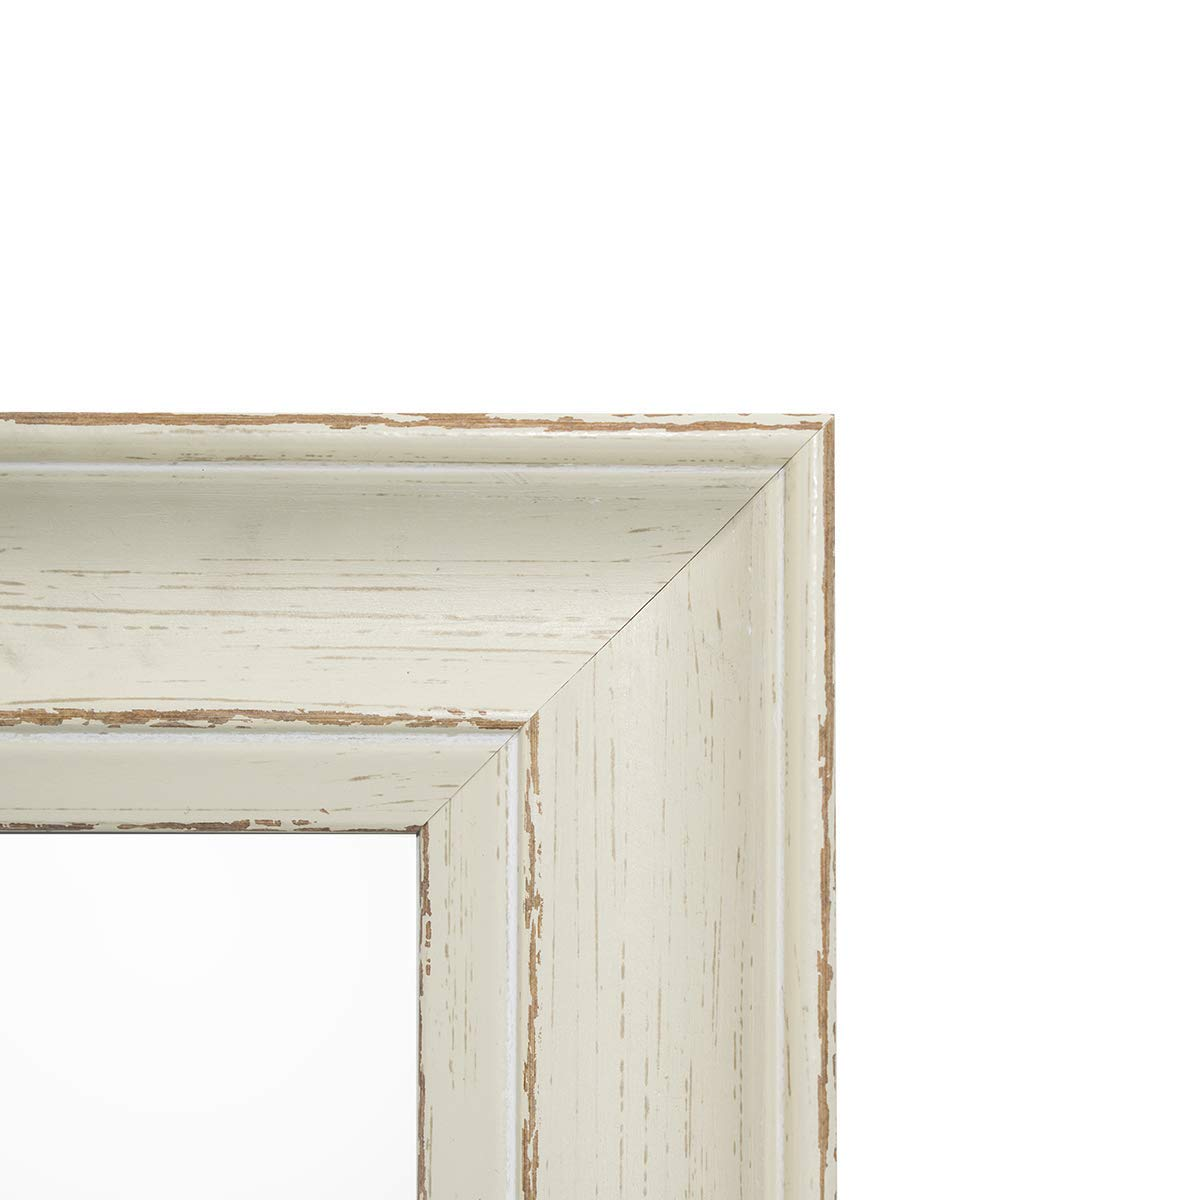 Table Top /& Ivory mat 5x7 8x10 Cream Frame Shabby Chic style Wall Hanging